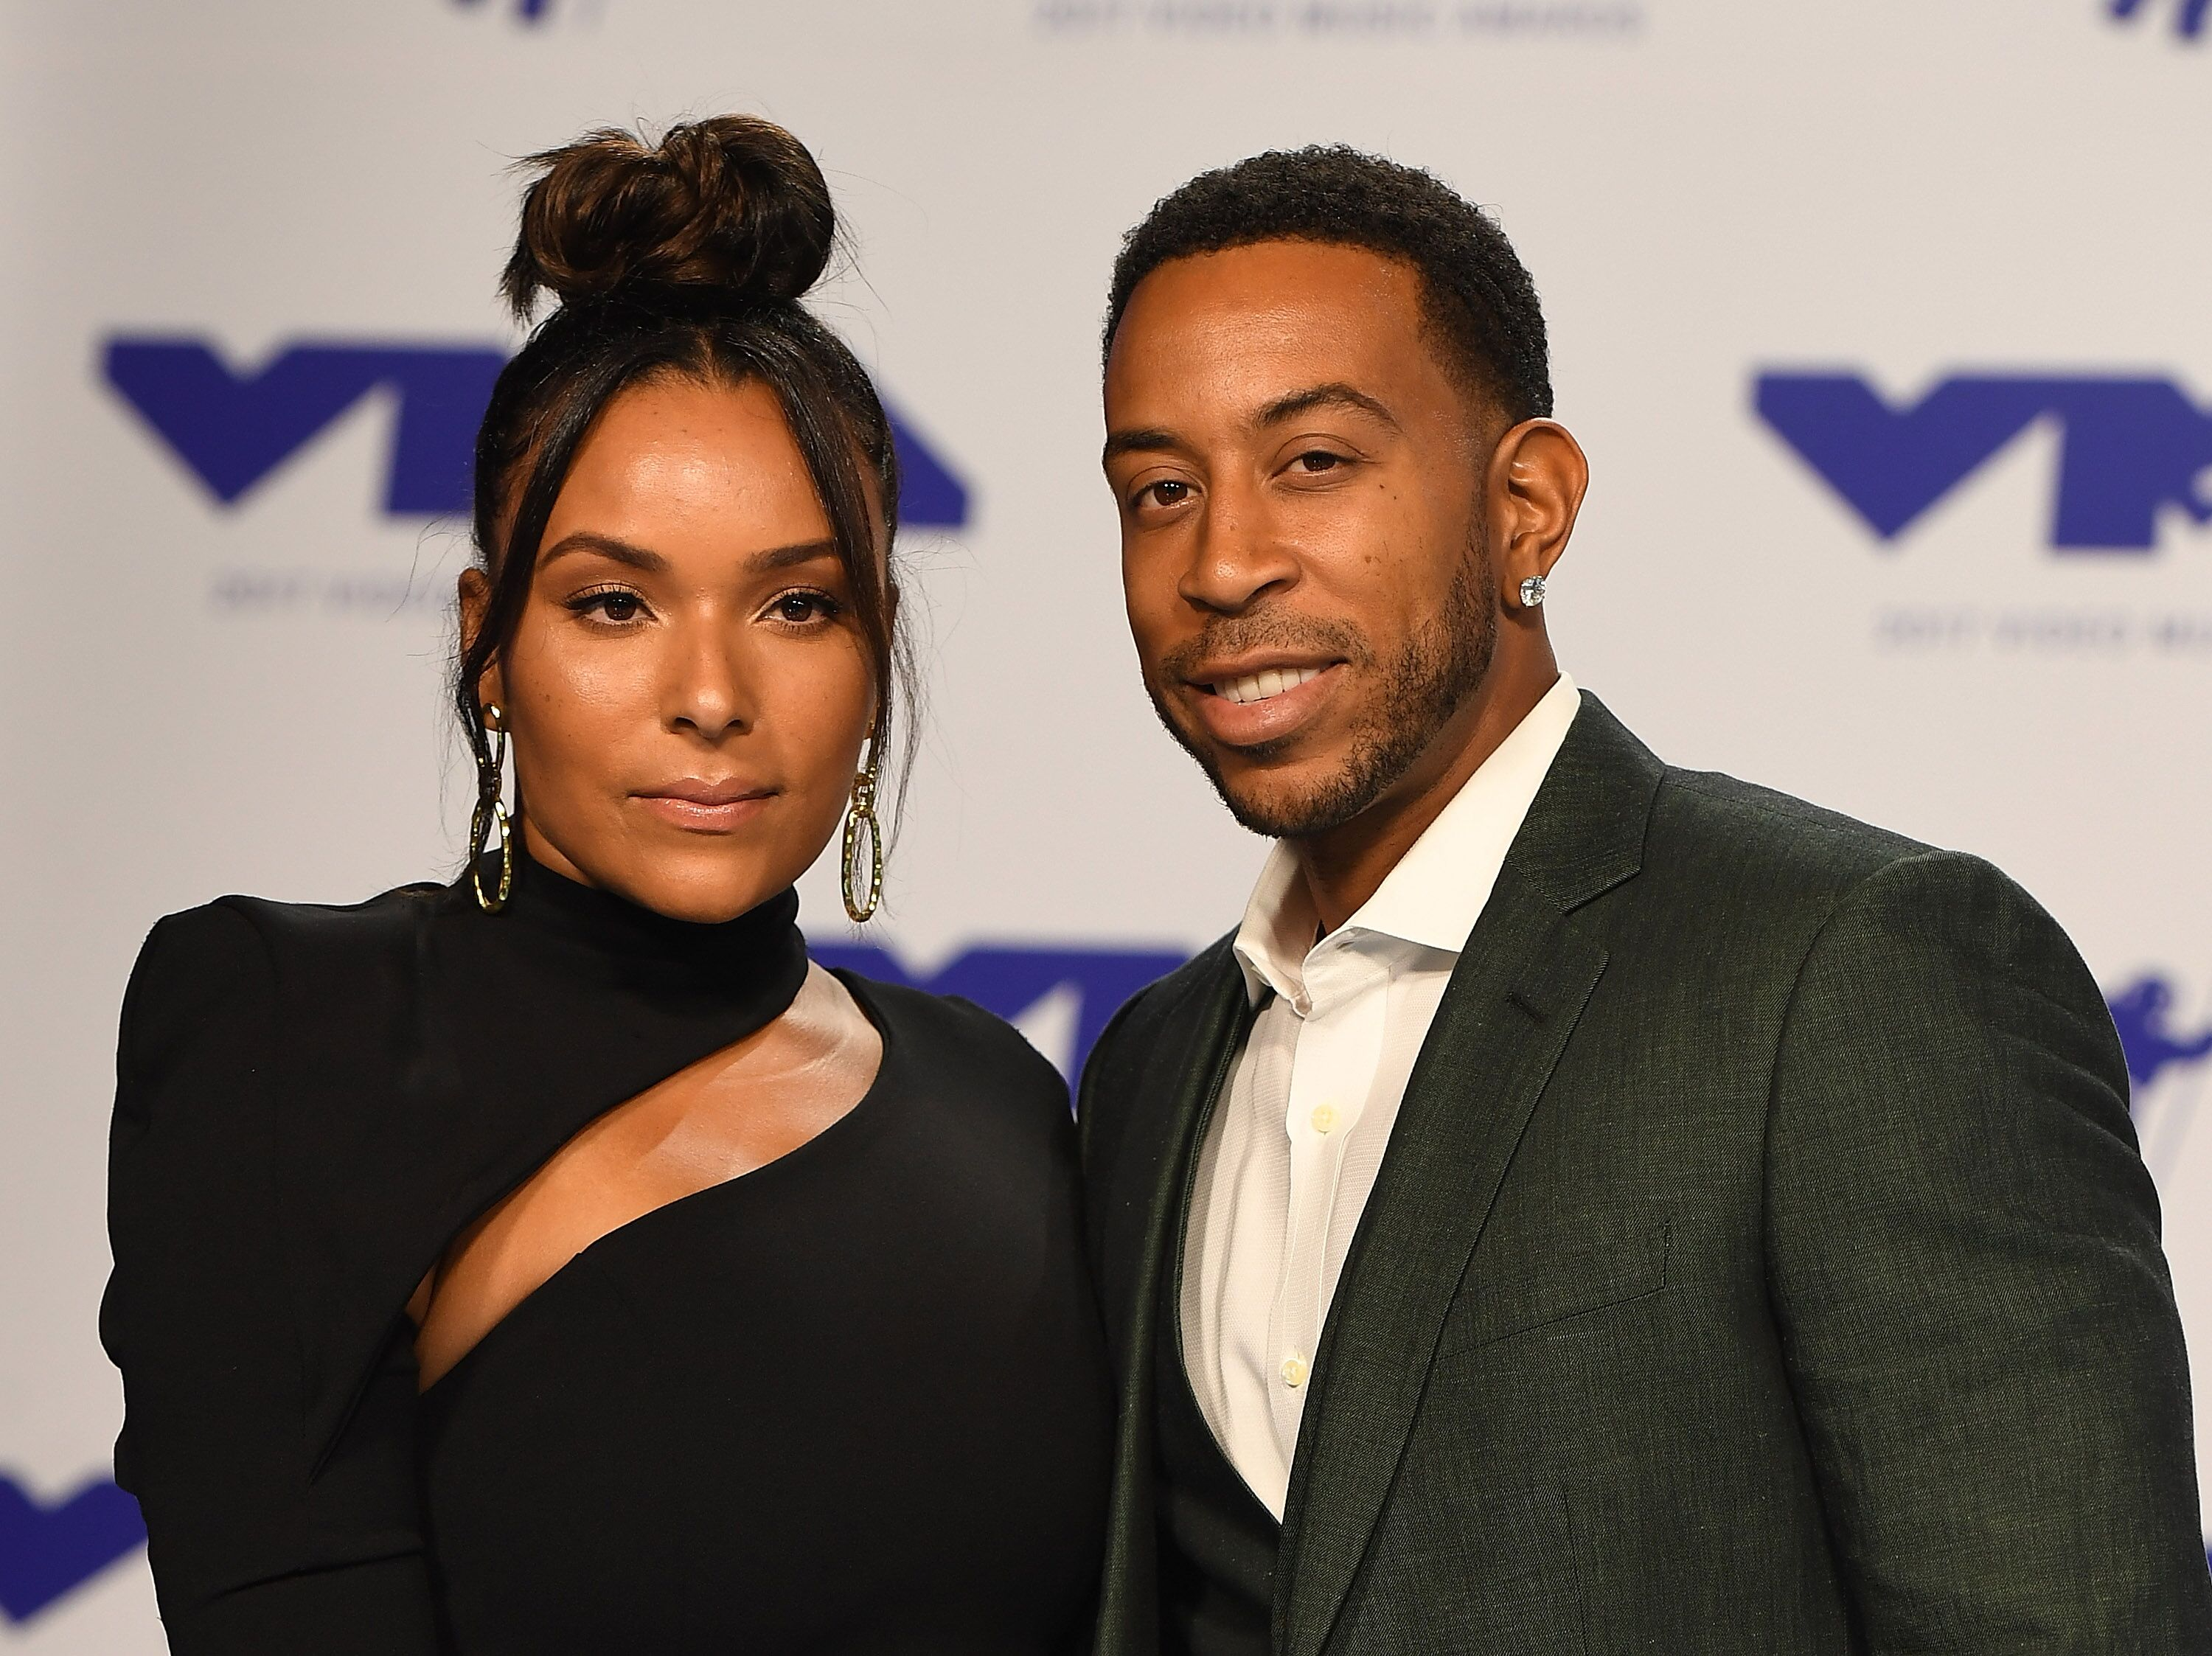 Ludacris and Eudoxie Mbouguiengue attend the 2017 MTV Video Music Awards at The Forum on August 27, 2017 | Photo: Getty Images